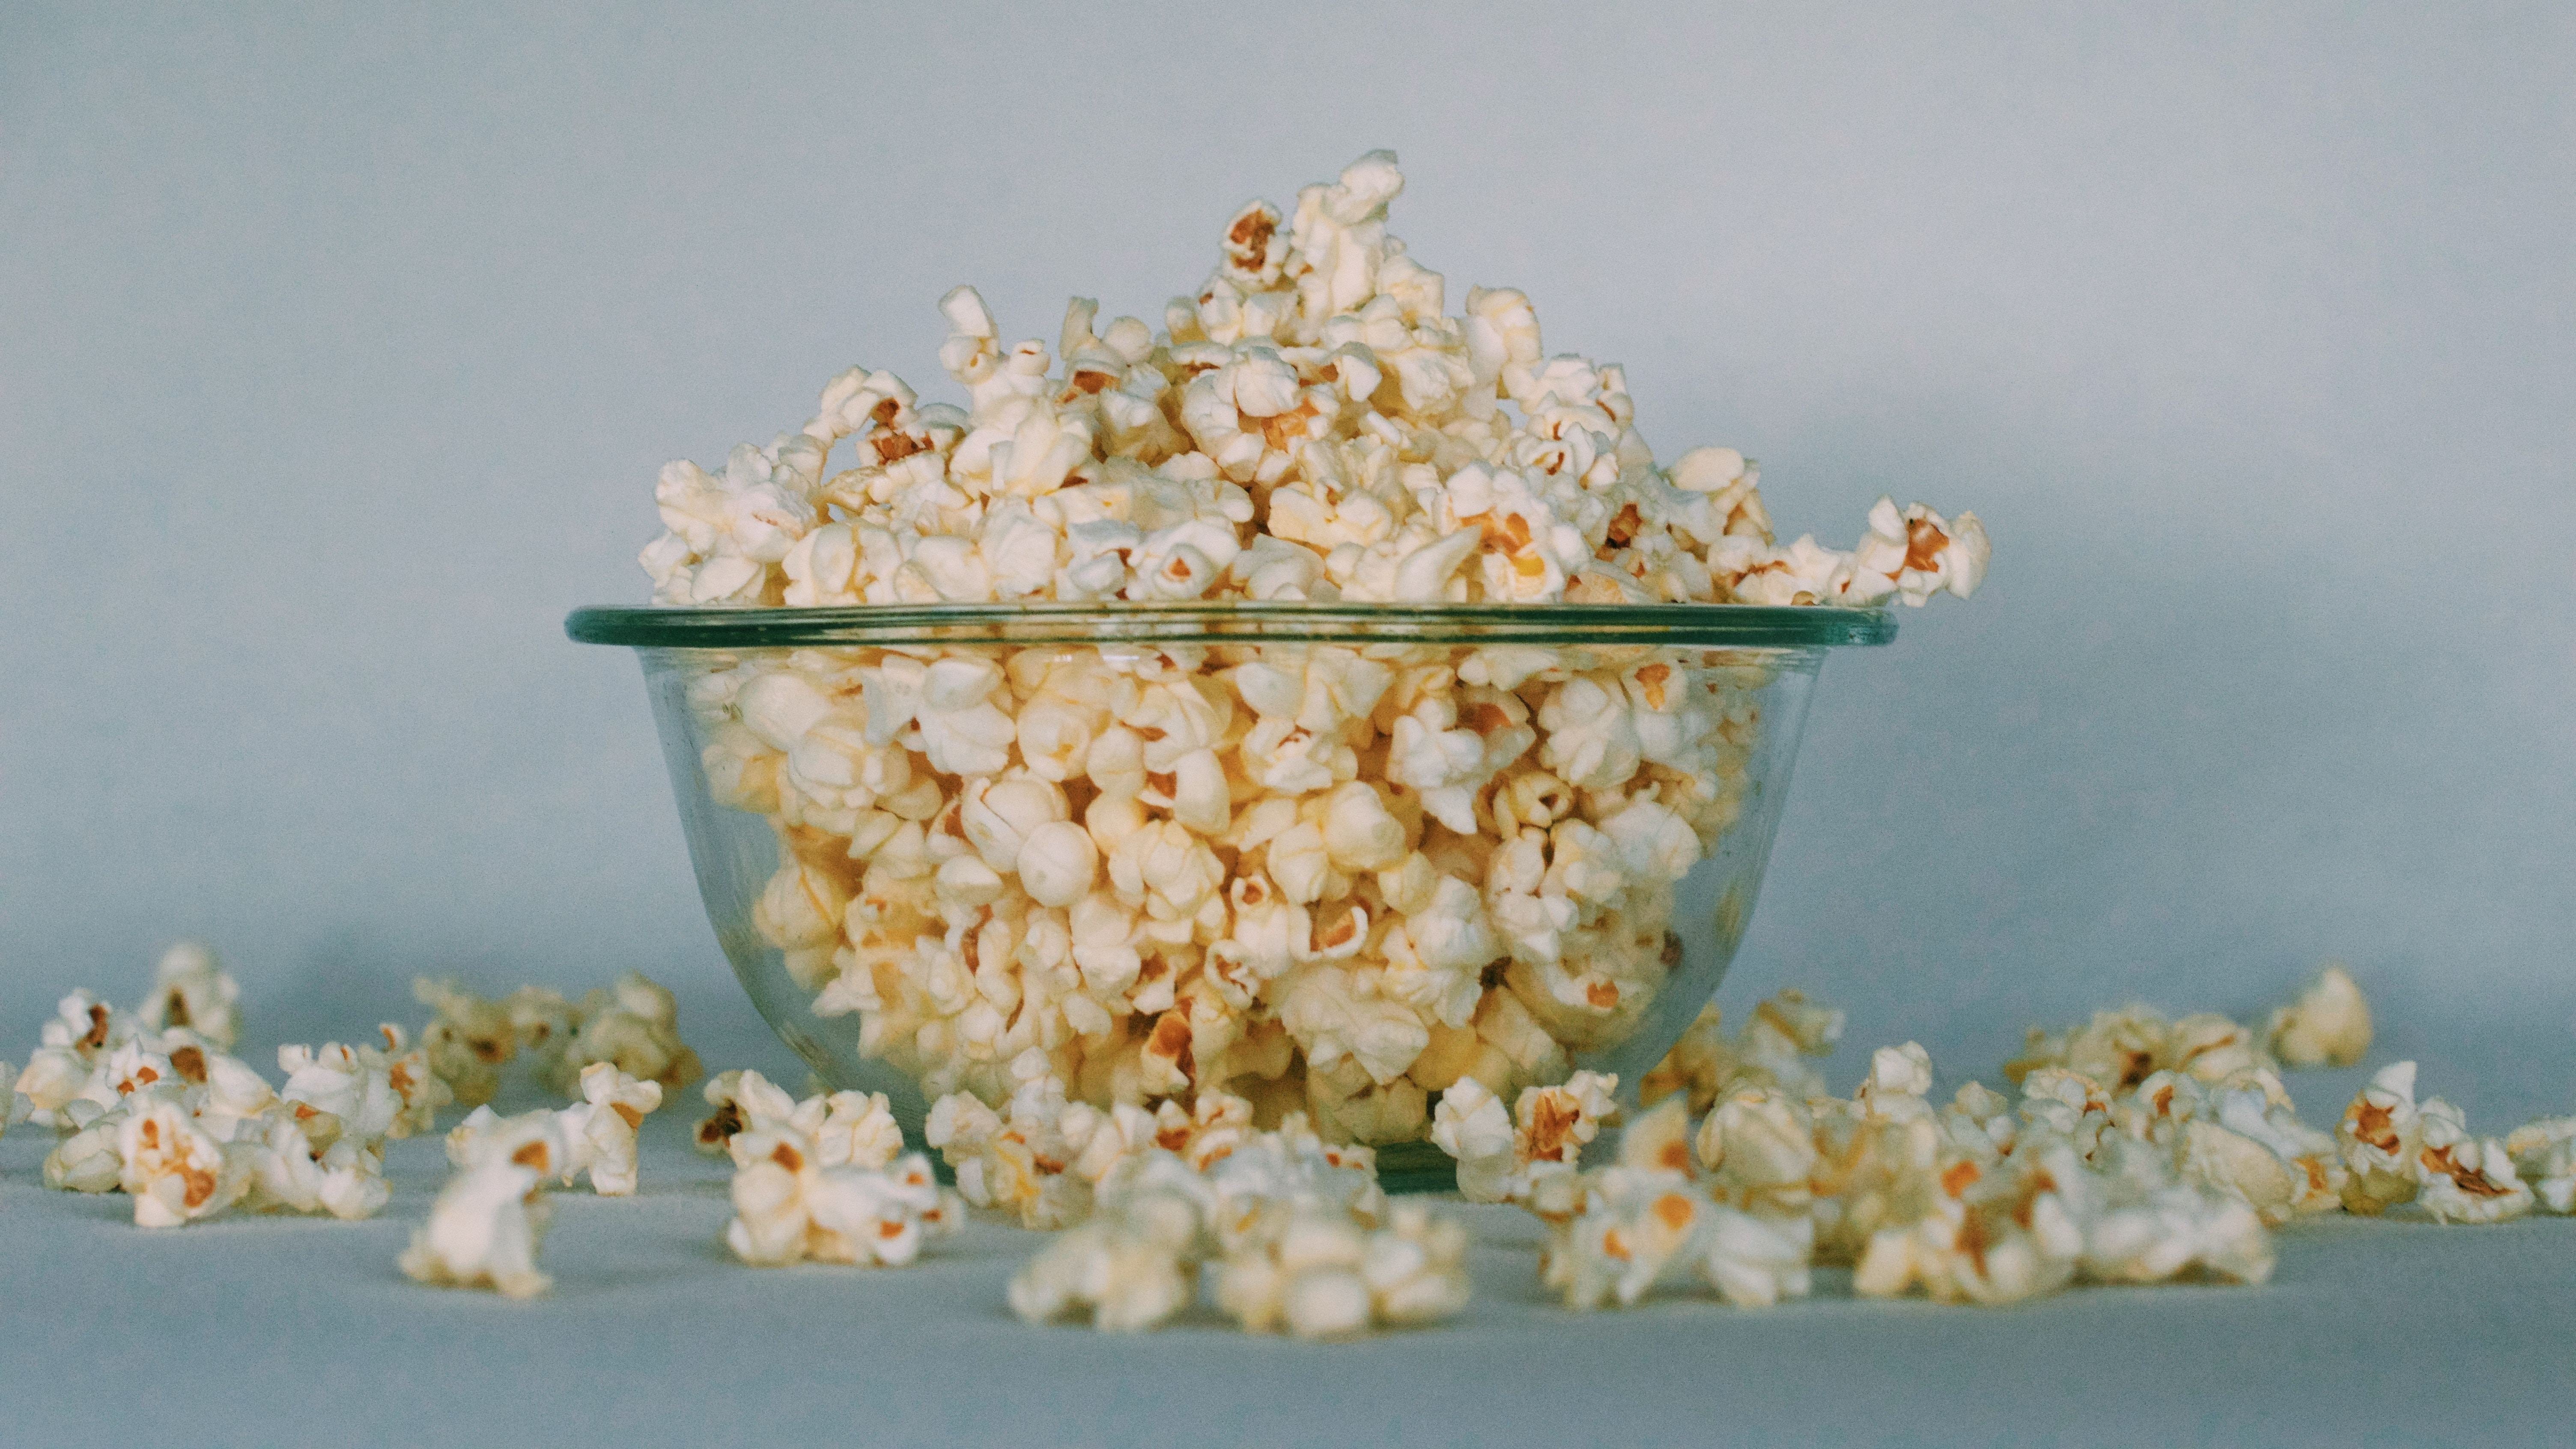 Optimise Your Movie Snacking With These Popcorn Toppings